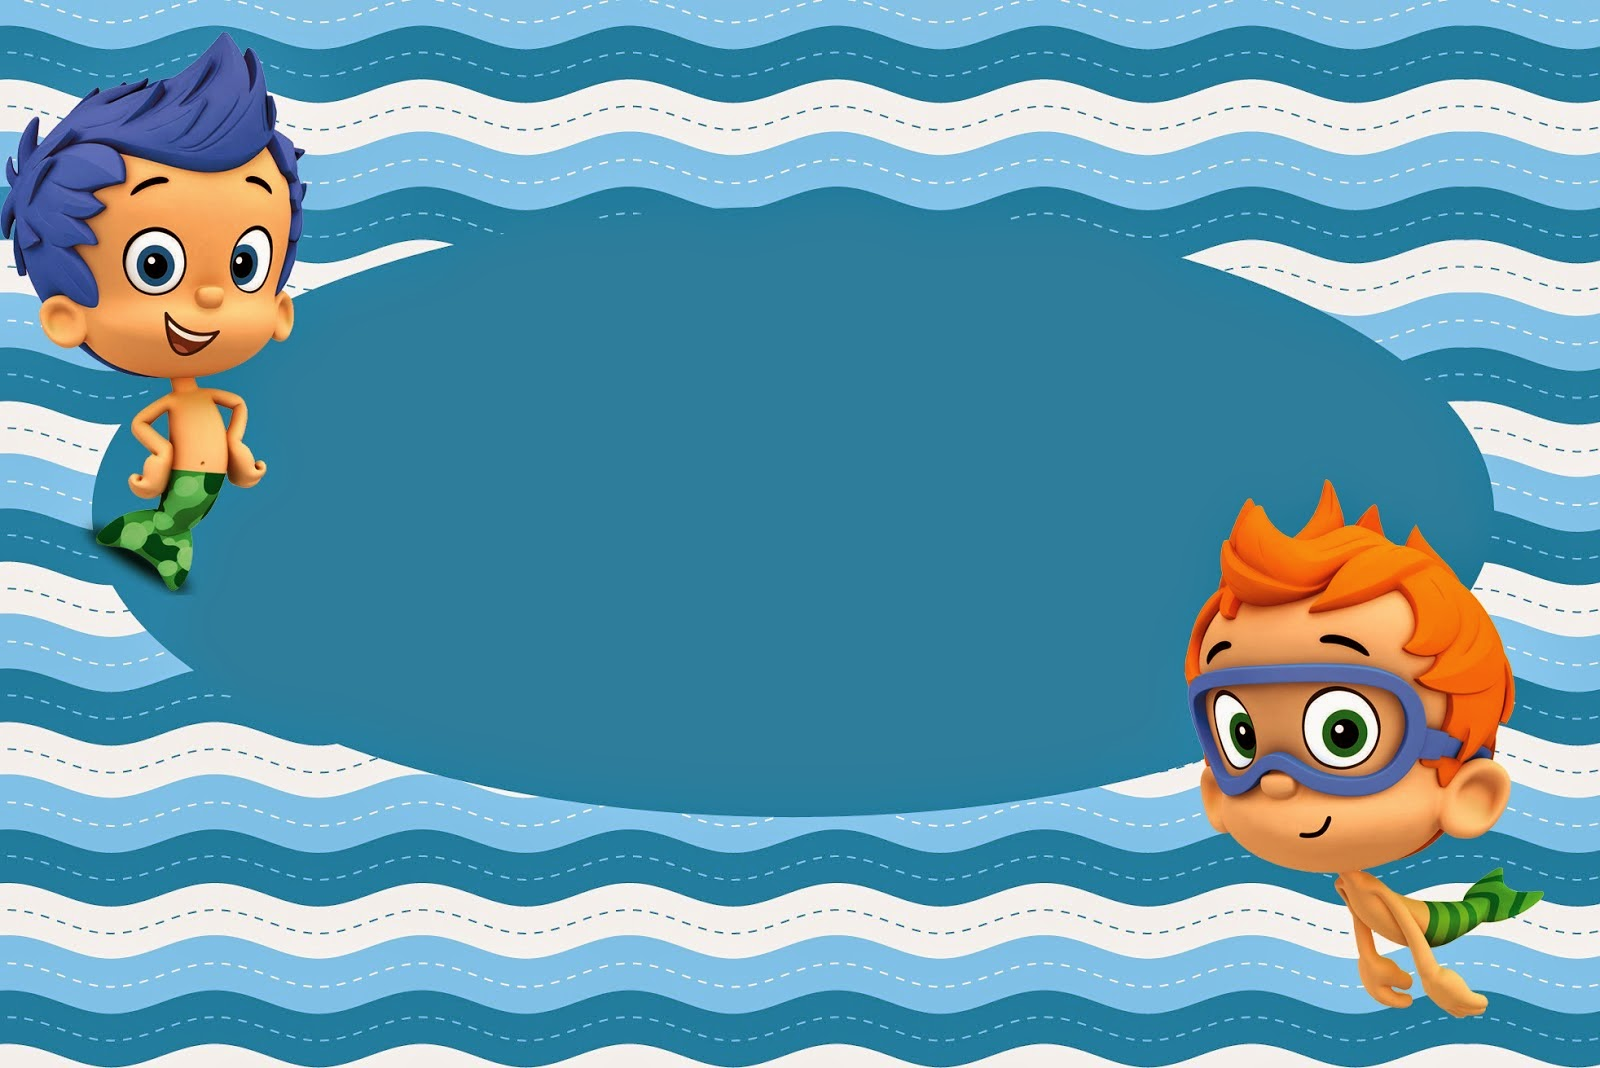 Bubble Guppies Party Invites is nice invitation example